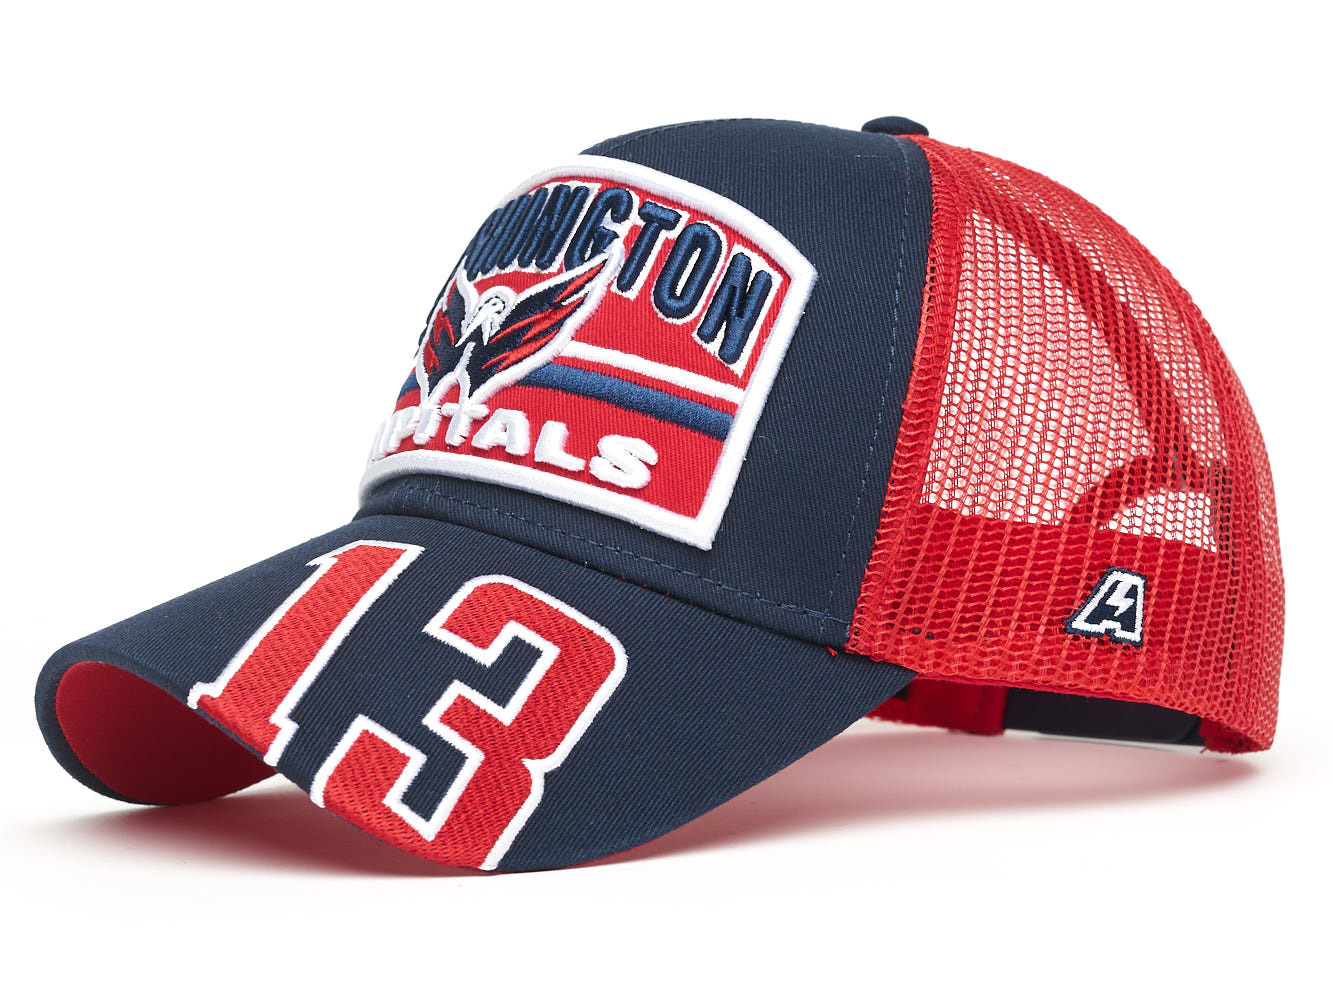 Бейсболка NHL Washington Capitals № 13